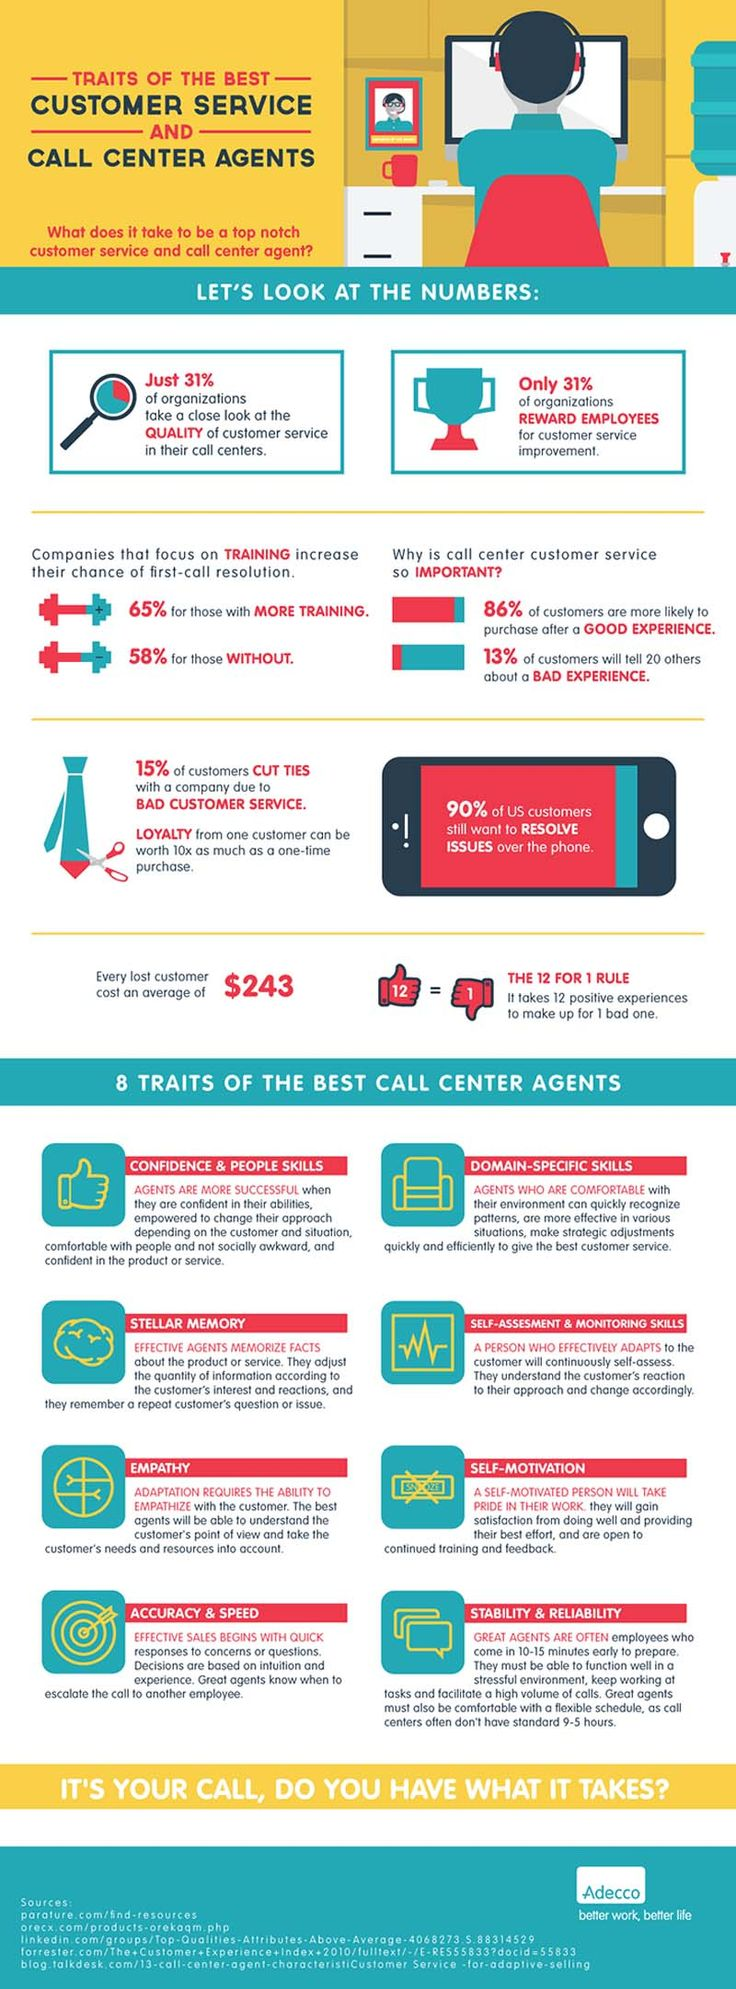 Infographic Traits of The Best Customer Service and Call Center Agents | Infographics Creator